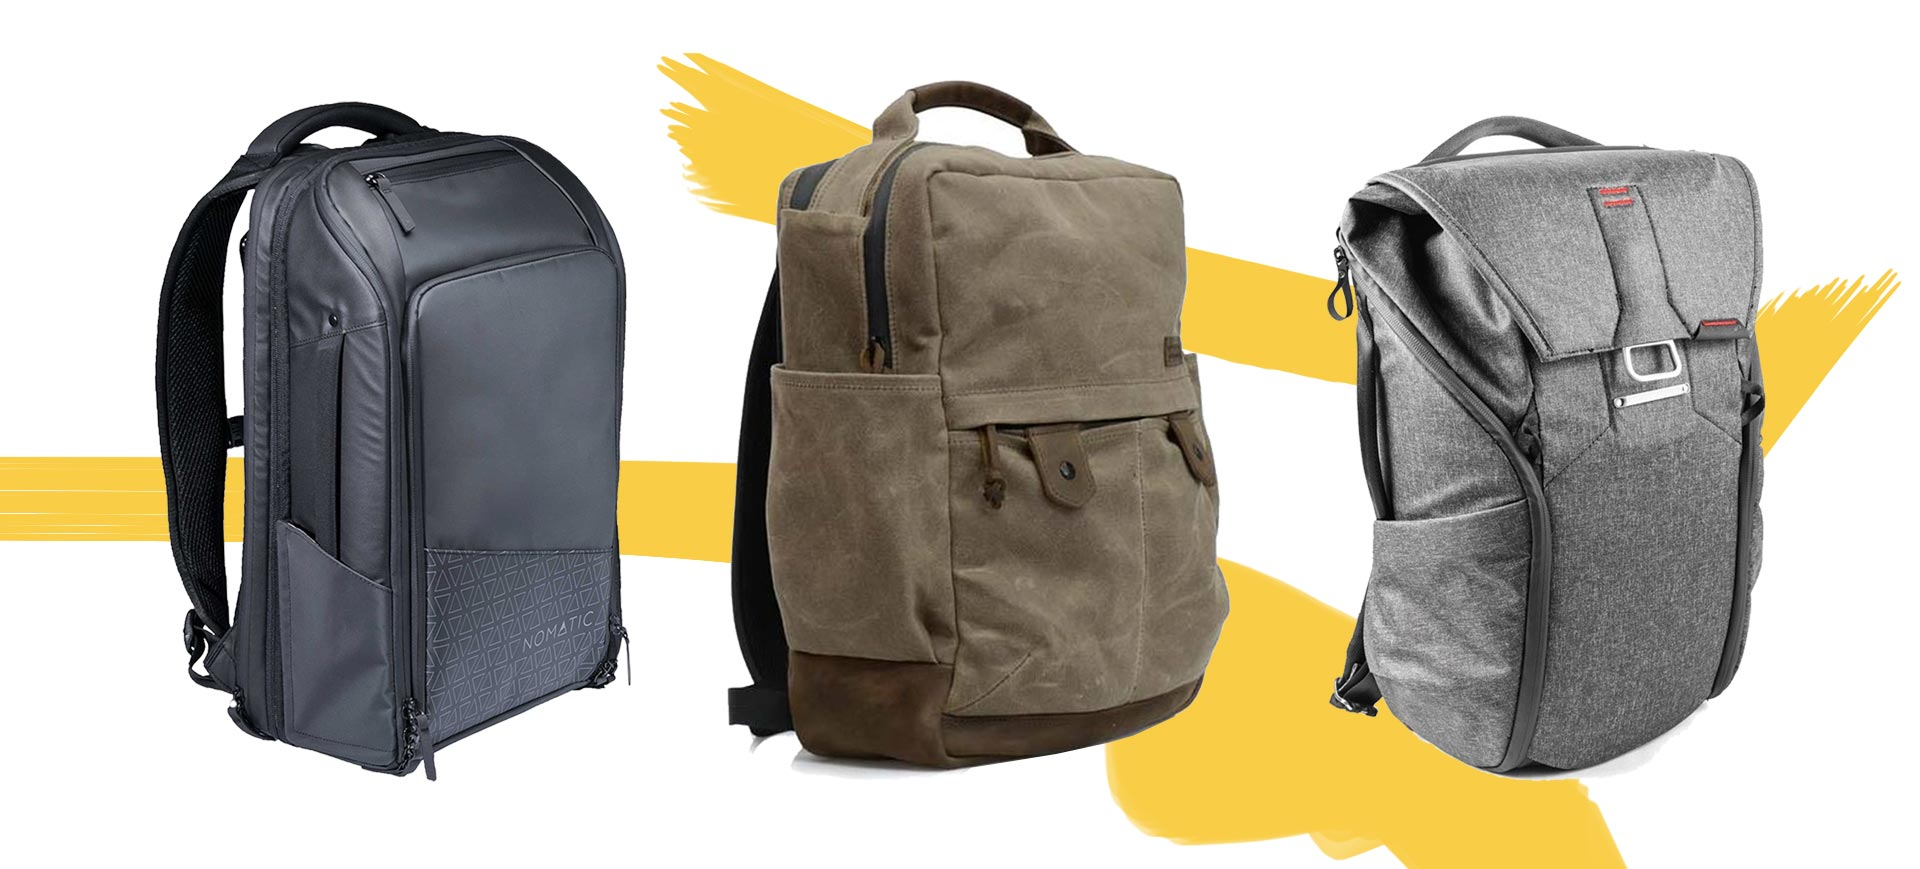 The Top Daily Carry Bags of 2018